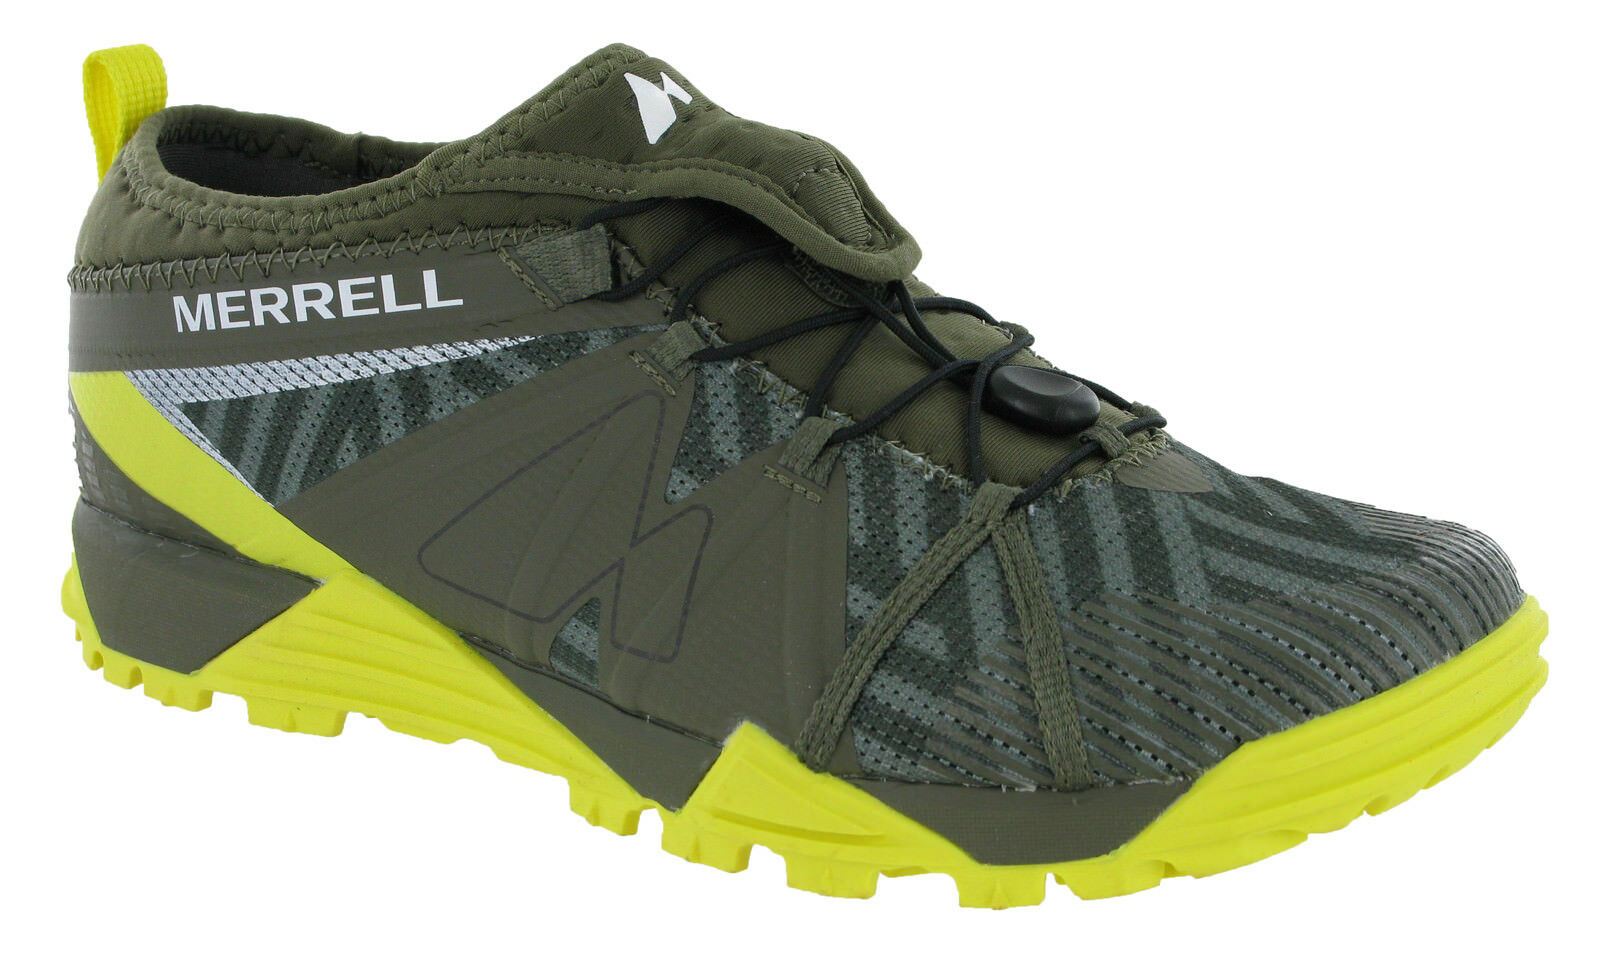 Merrell Avalaunch Mens Casual Comfy Slip On Stylish Green Trainers J37819